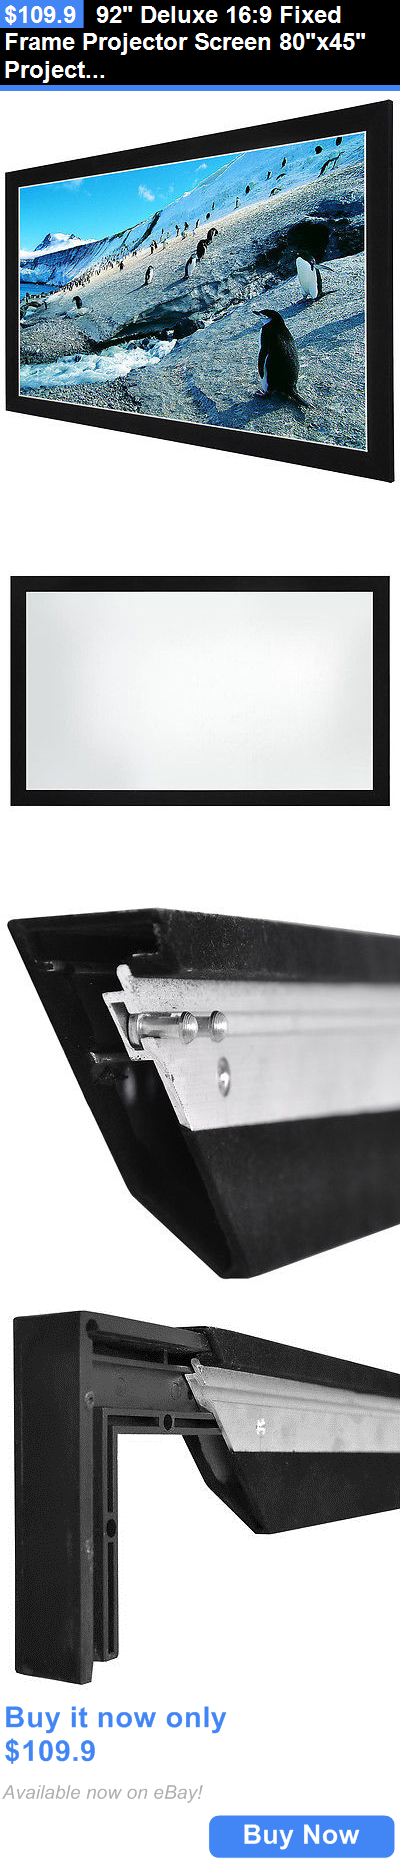 Projection Screens and Material: 92 Deluxe 16:9 Fixed Frame ...